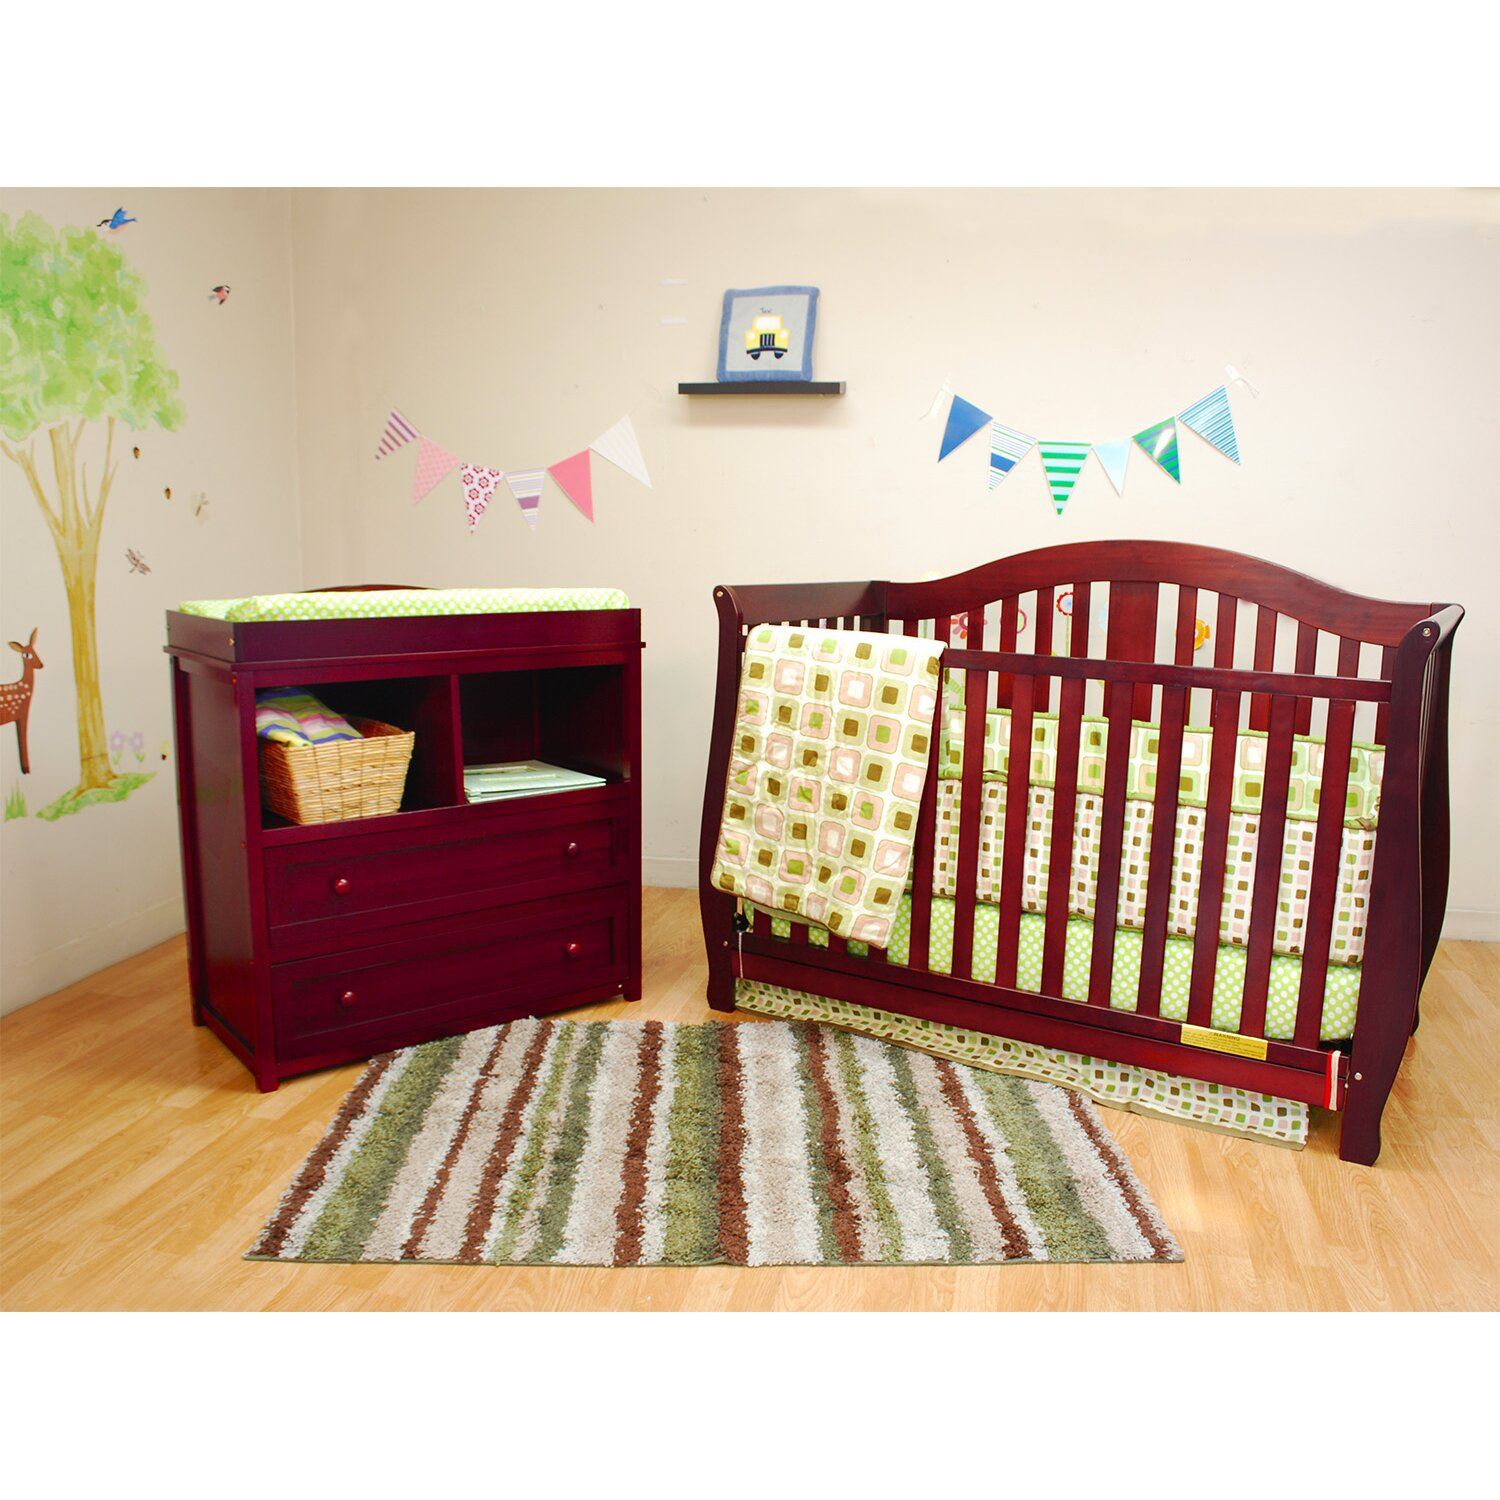 Convertible Crib Furniture Sets Cribs For Sale Shop Hayneedle Baby Furniture Cribs For Sale